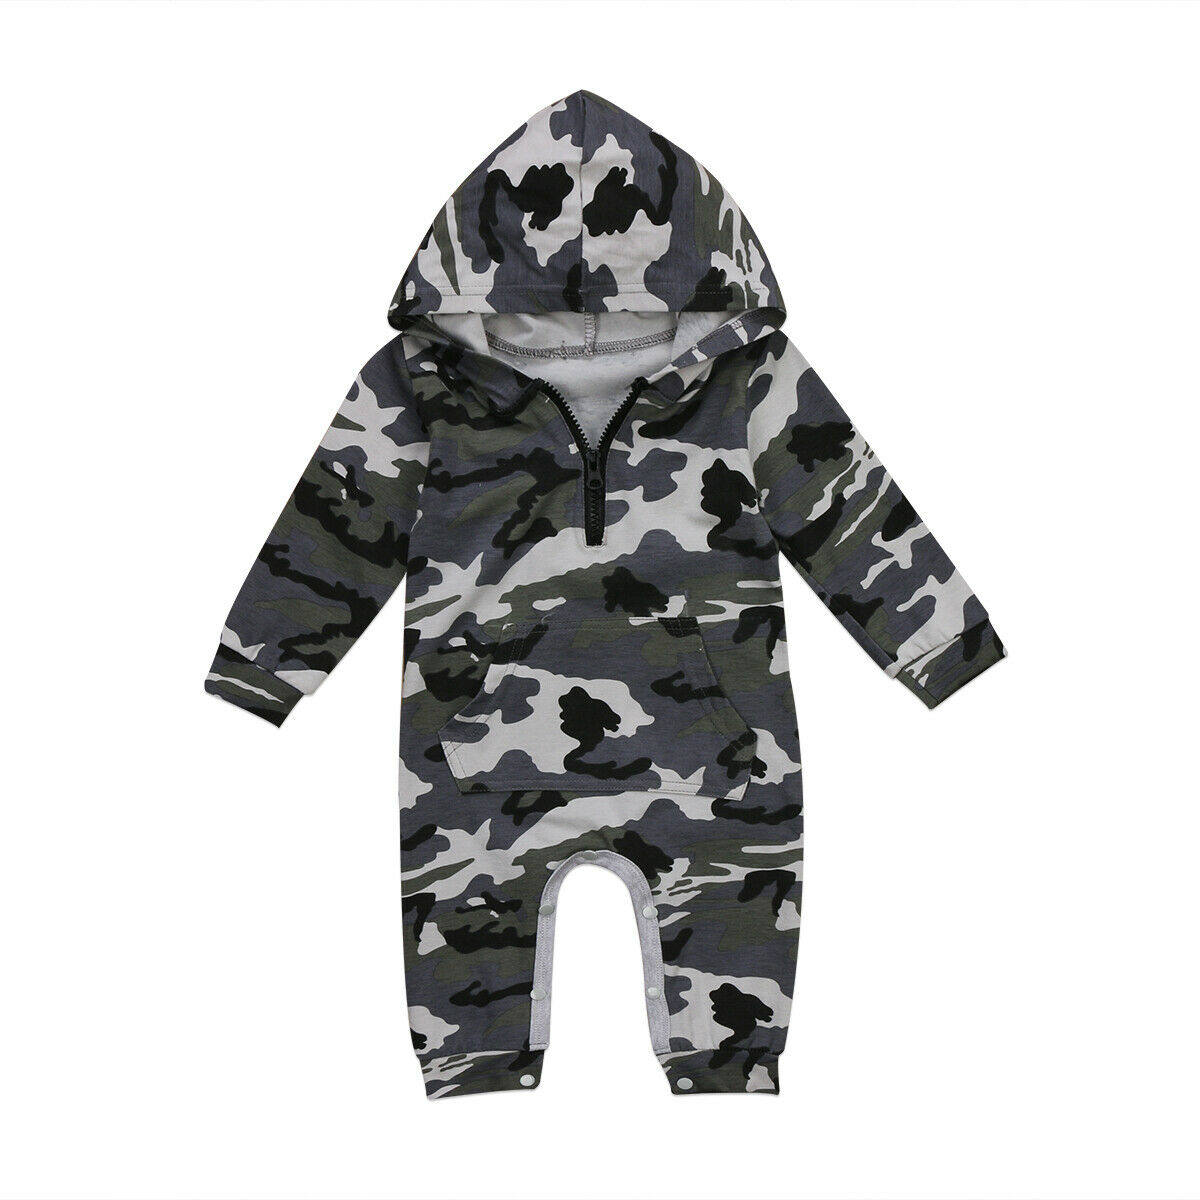 US Newborn Baby Infant Boy Girl Romper Hooded Jumpsuit Bodysuit Outfits Clothes